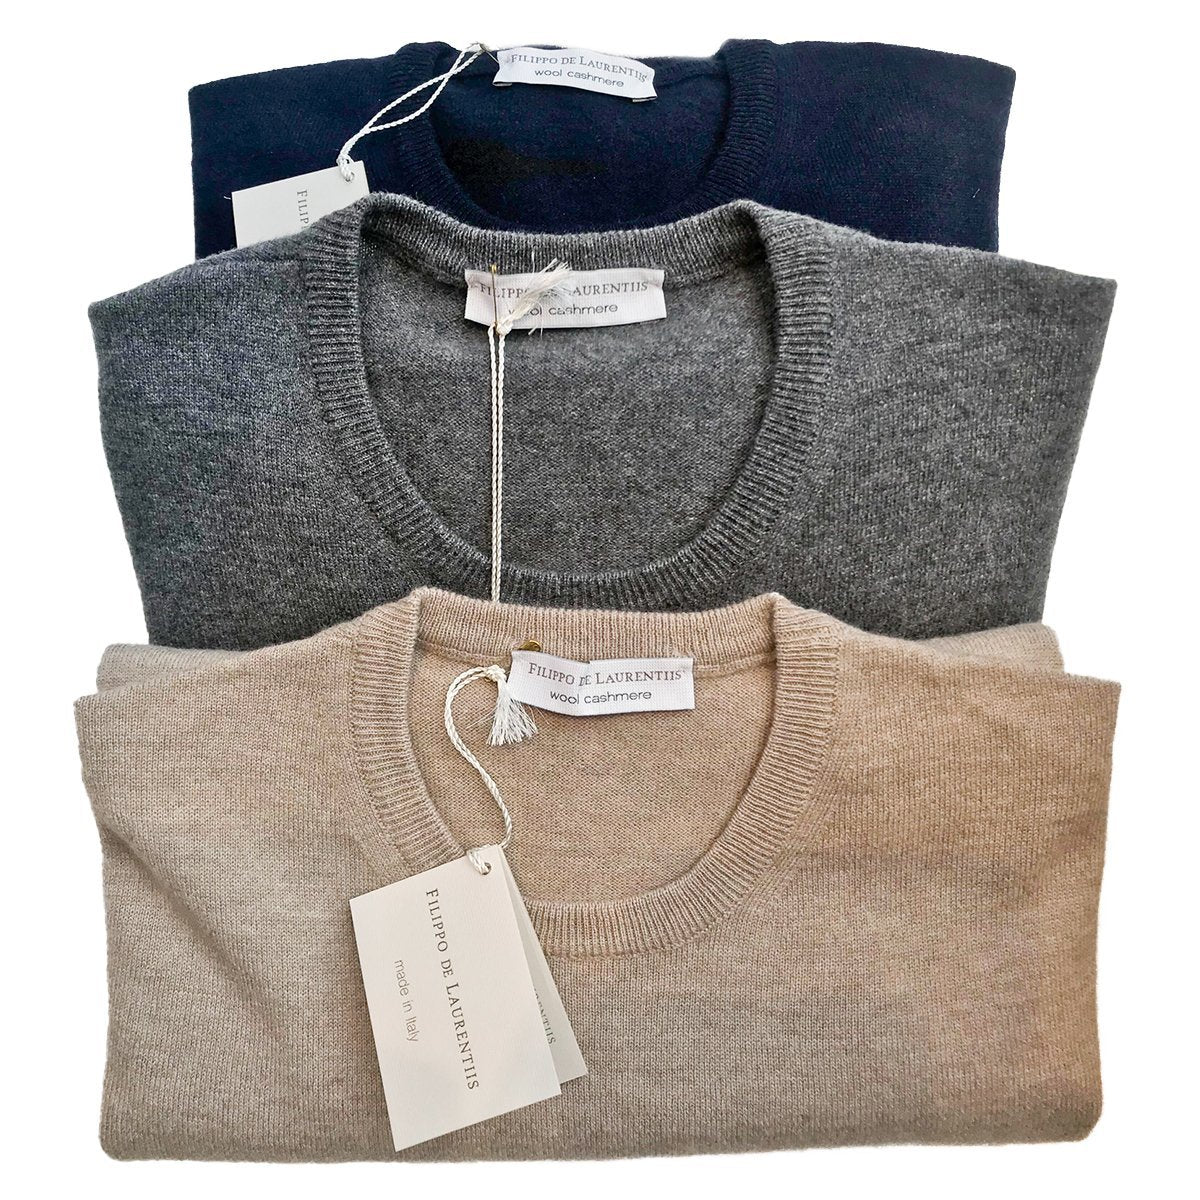 Filippo de Laurentis - Crewneck, Beige, Knitwear | NEW TAILOR Webshop